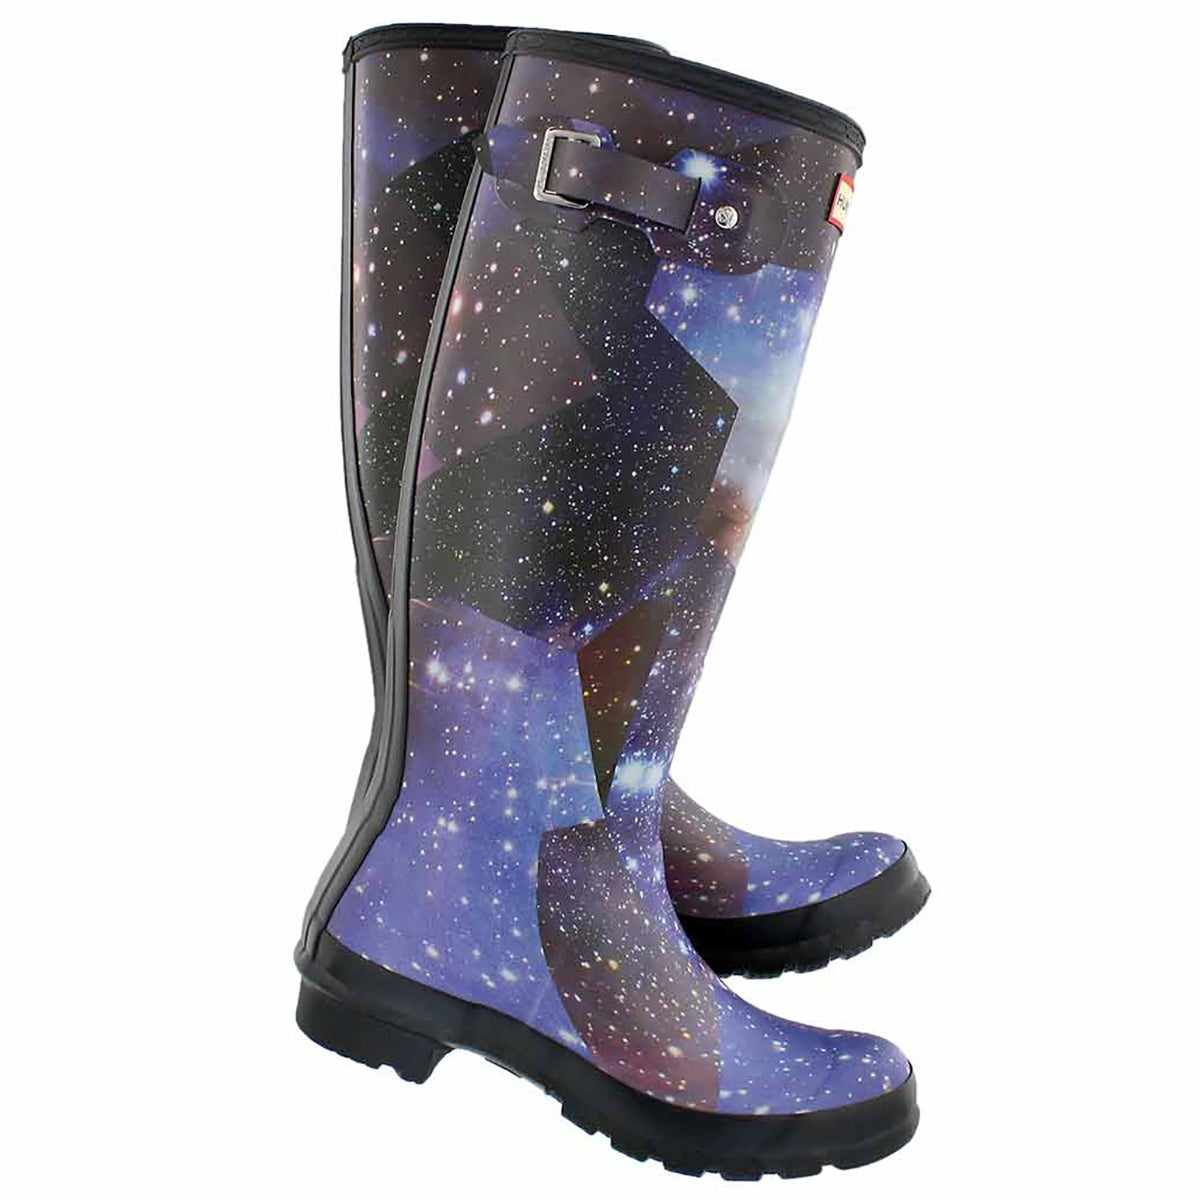 Lds Orig.Tall SpaceCamo mdngt rain boot